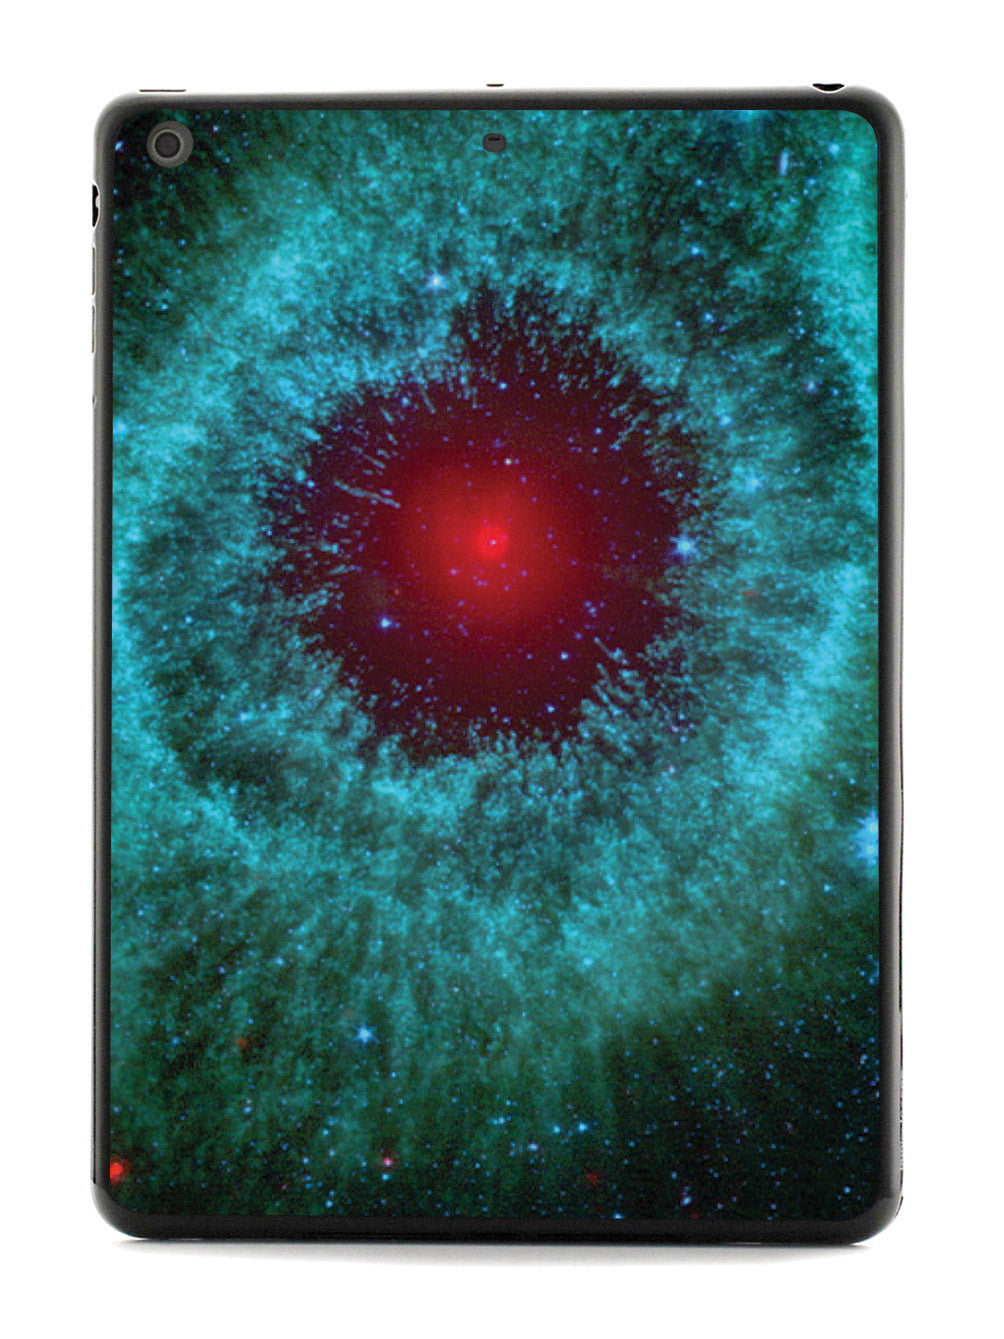 Helix Nebula Outer Space Planetary Eye of God Case